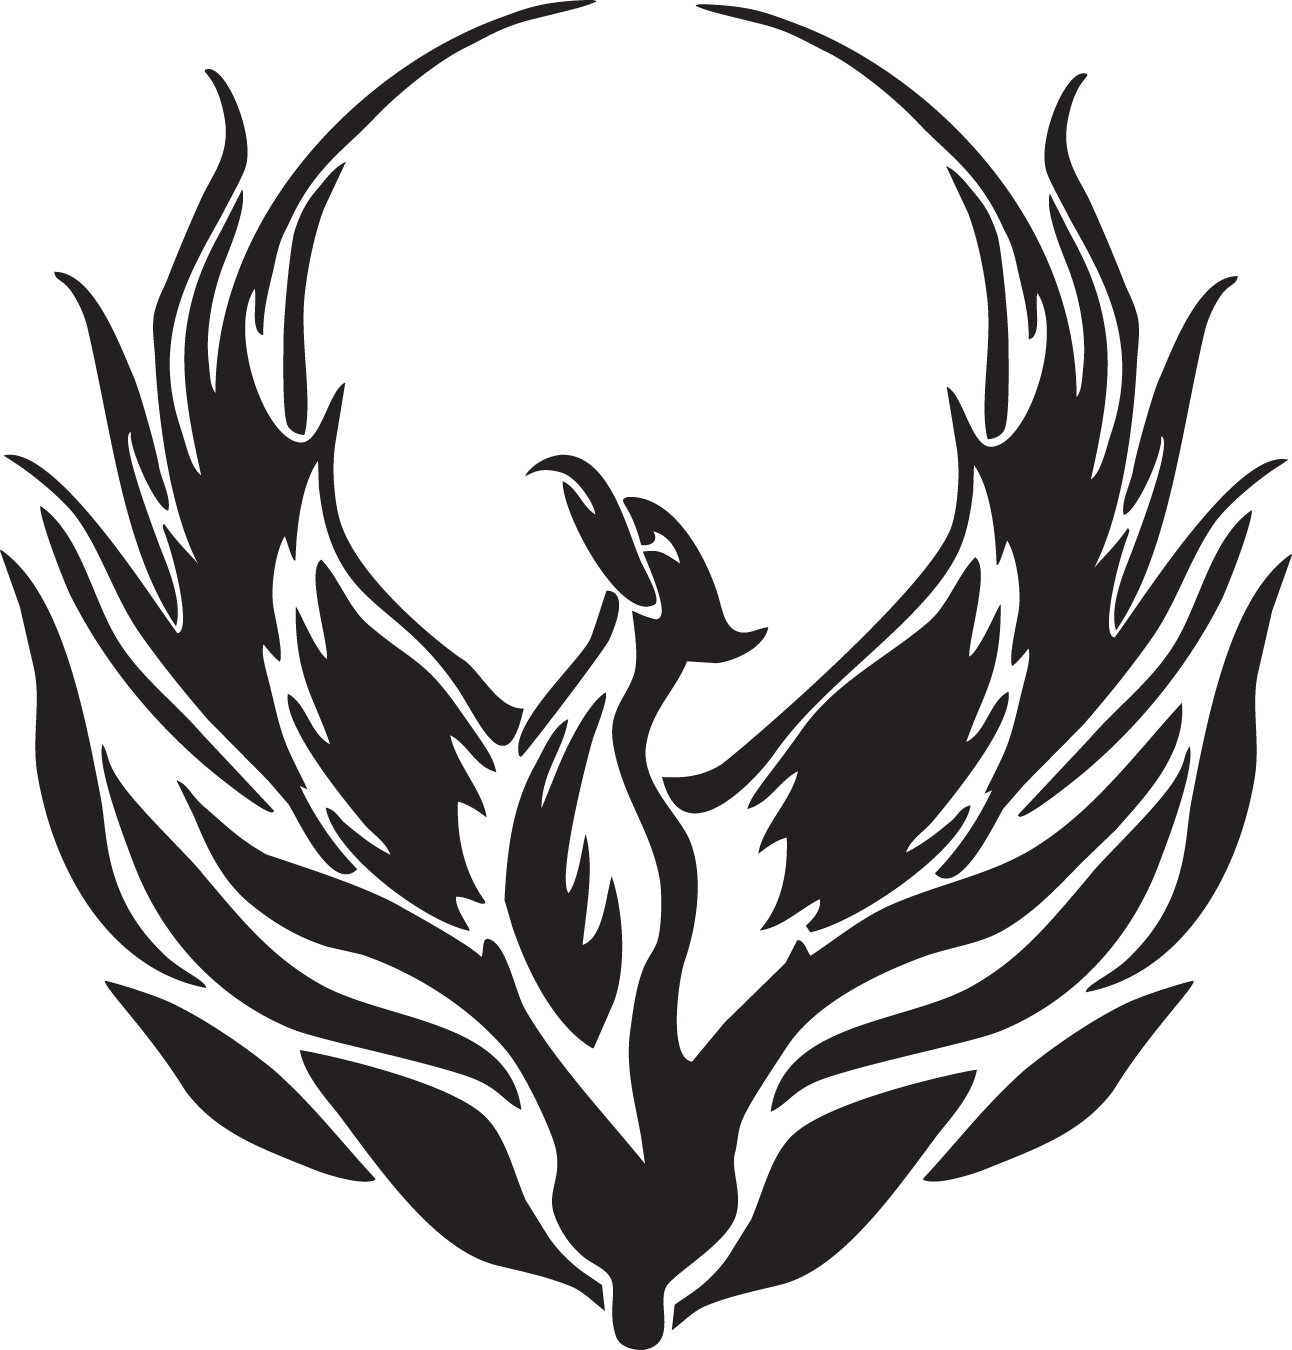 Phoenix drawing png. Legendary creature symbol clip